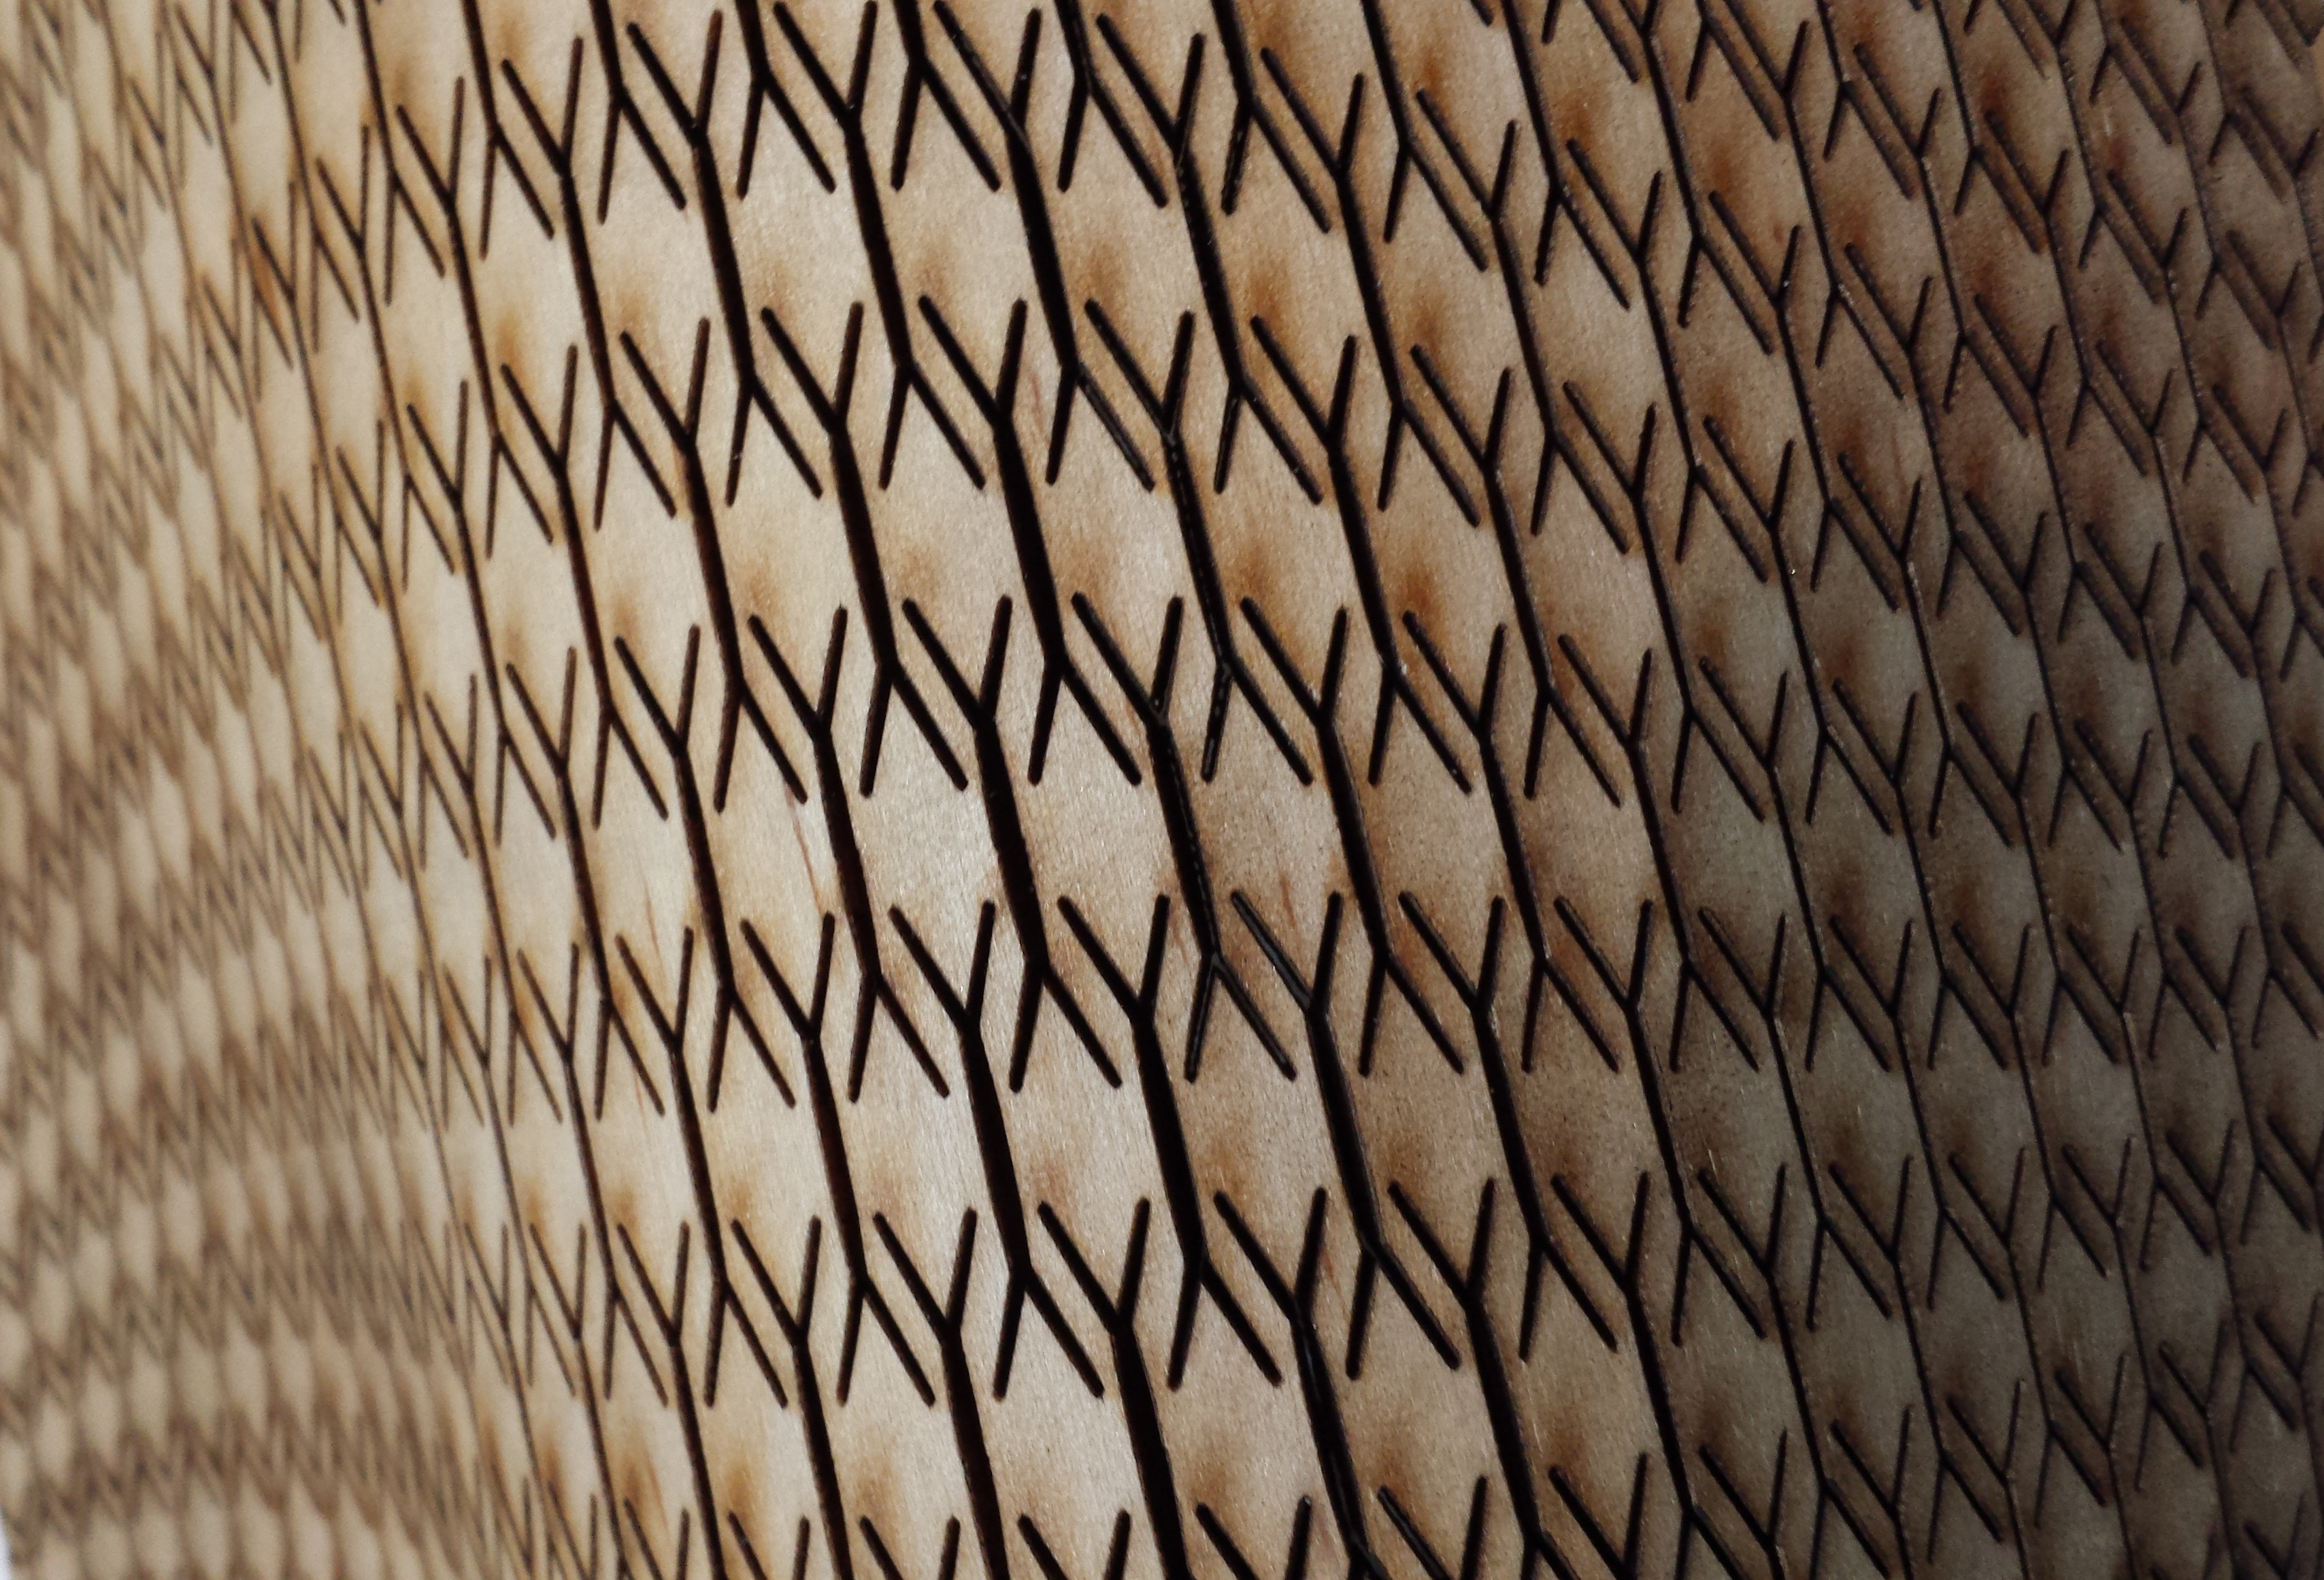 Picture of Curved Laser Bent Wood